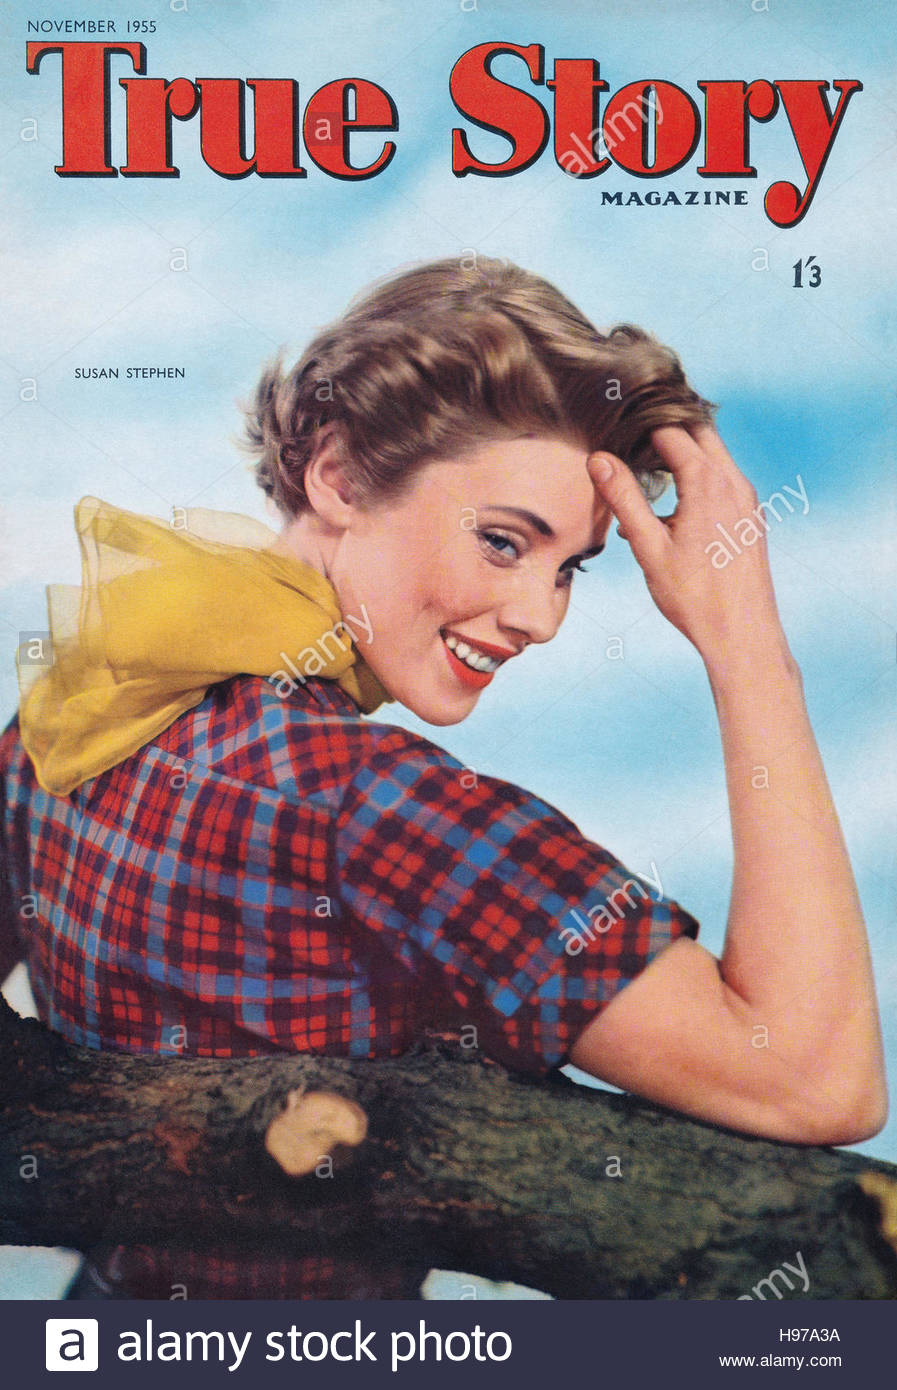 November 1955 cover of True Story magazine featuring actress Susan Stephen - Stock Image